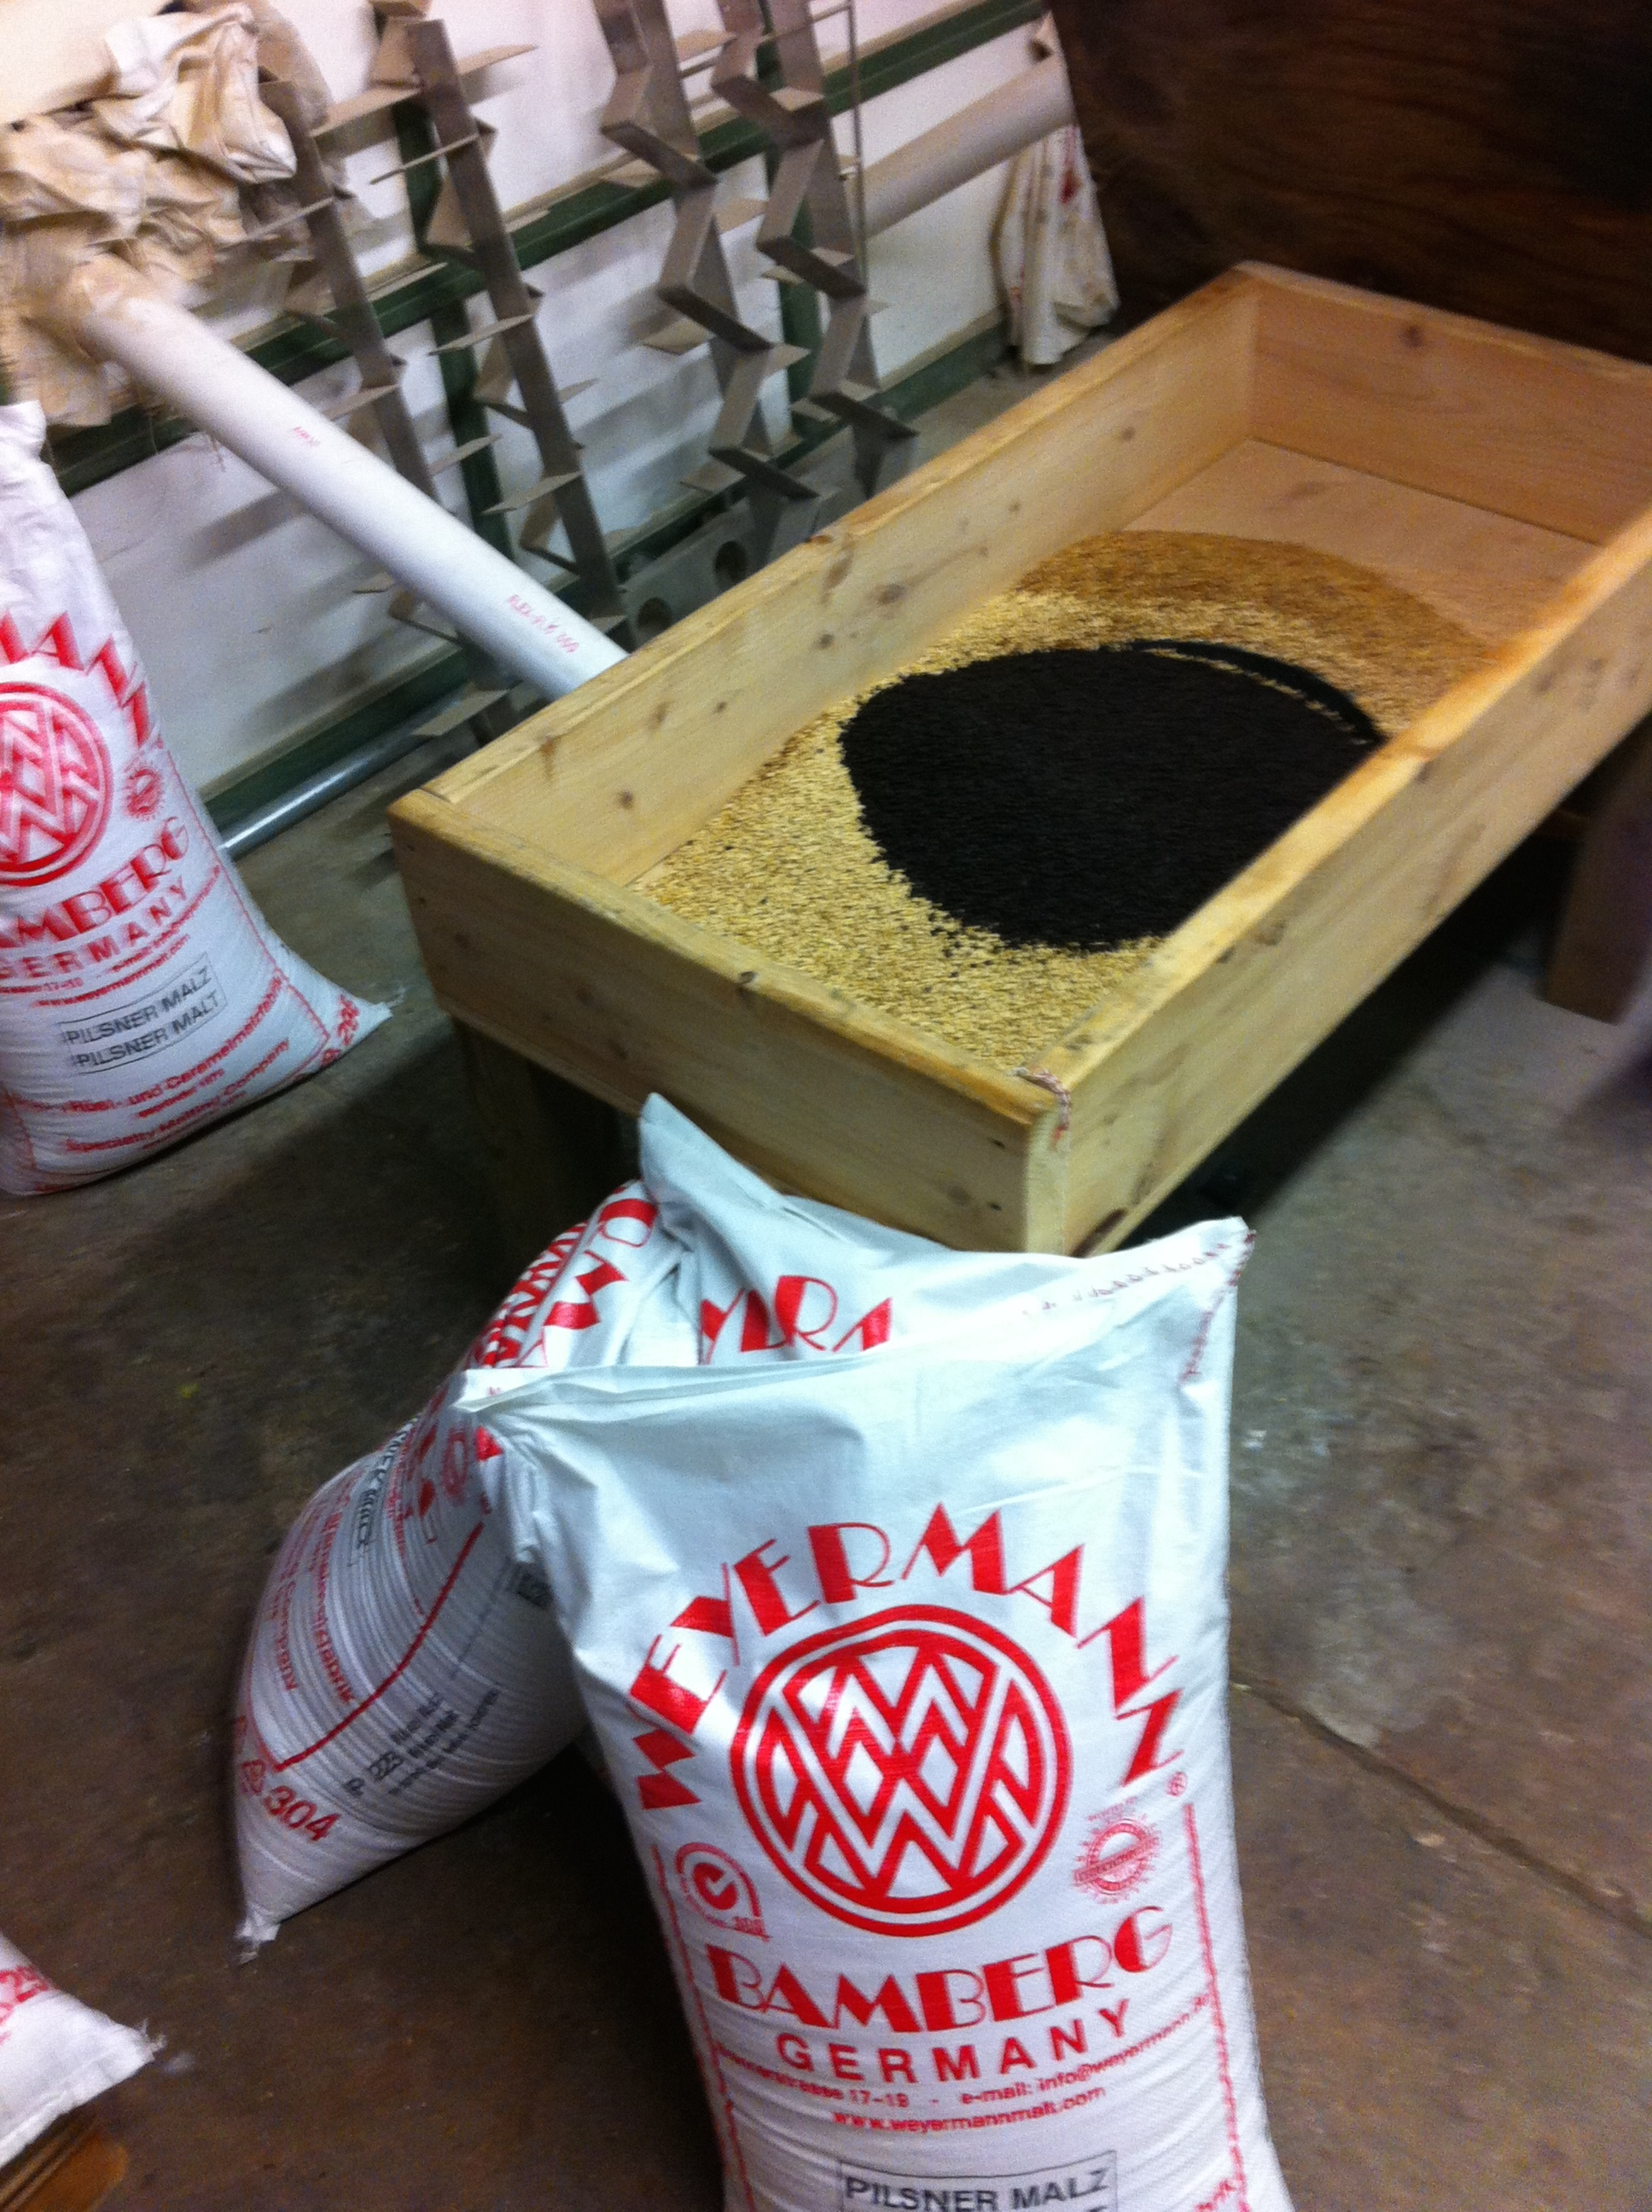 Weyermann is the best grain in the world! Check out that dark chocolate malt!